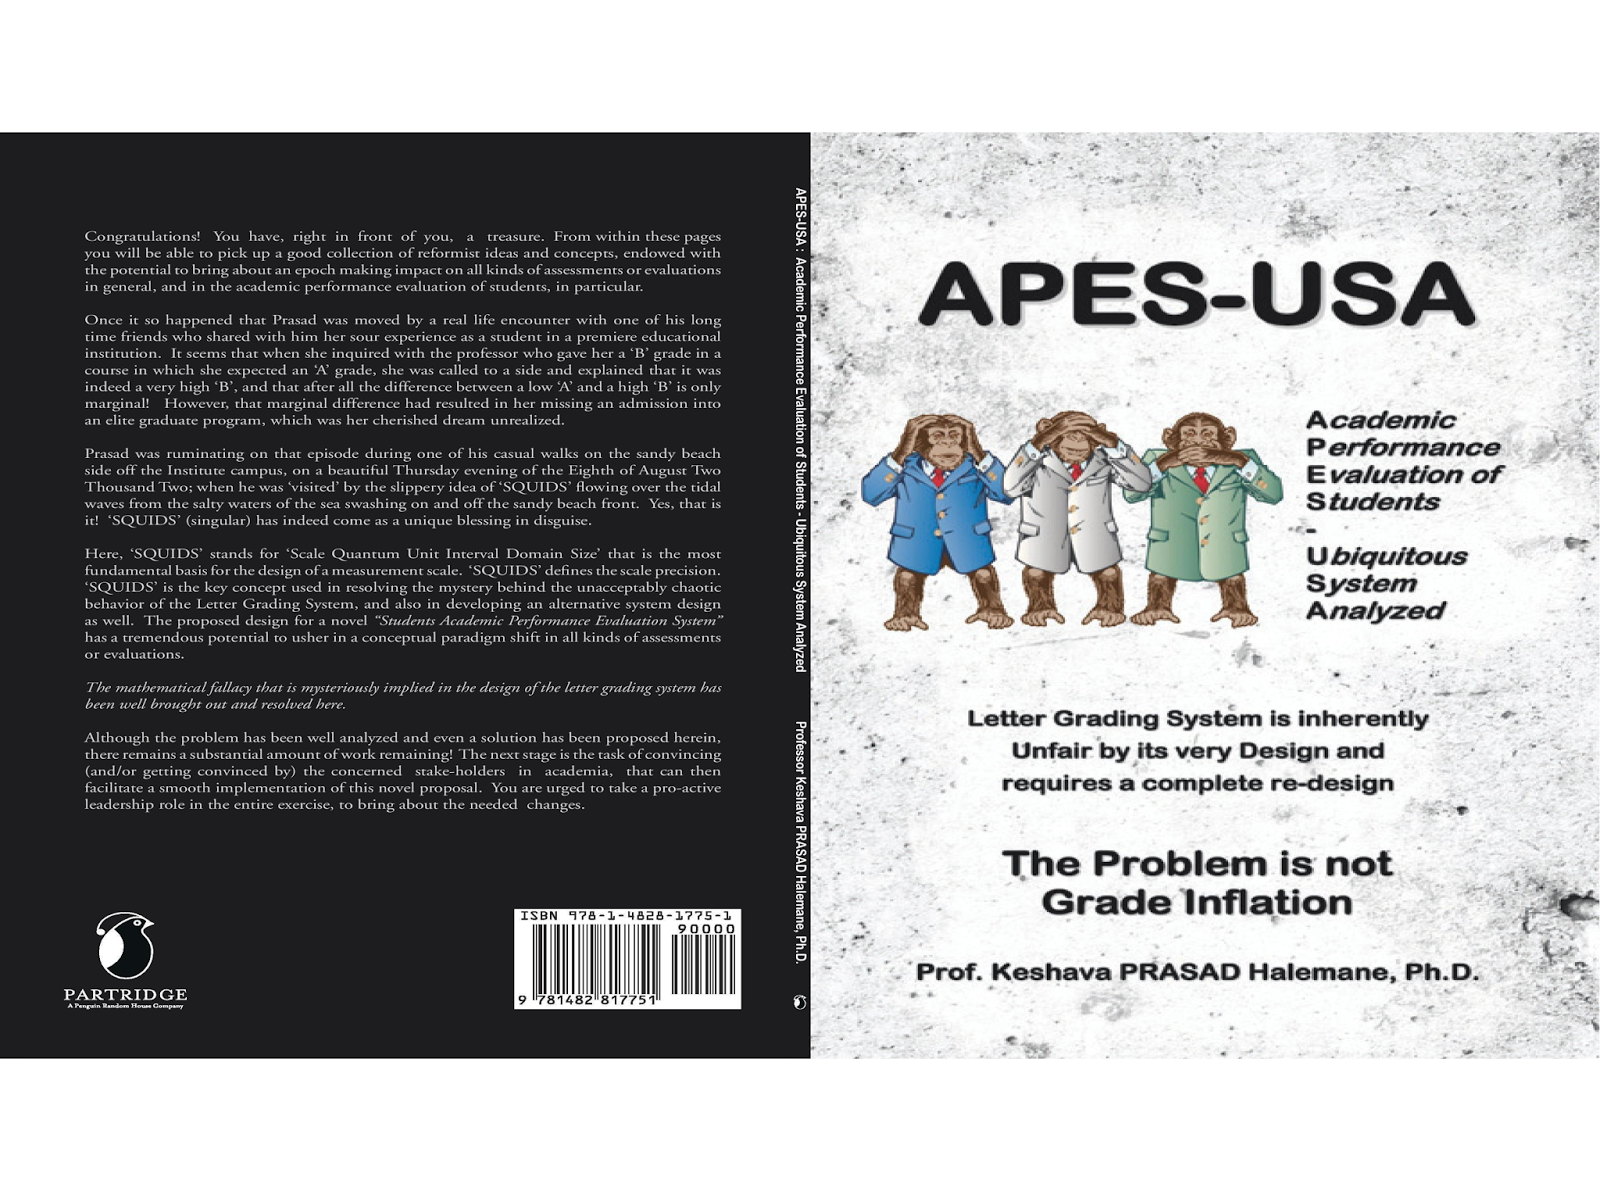 APES-USA: An intriguing milestone showing the distance as